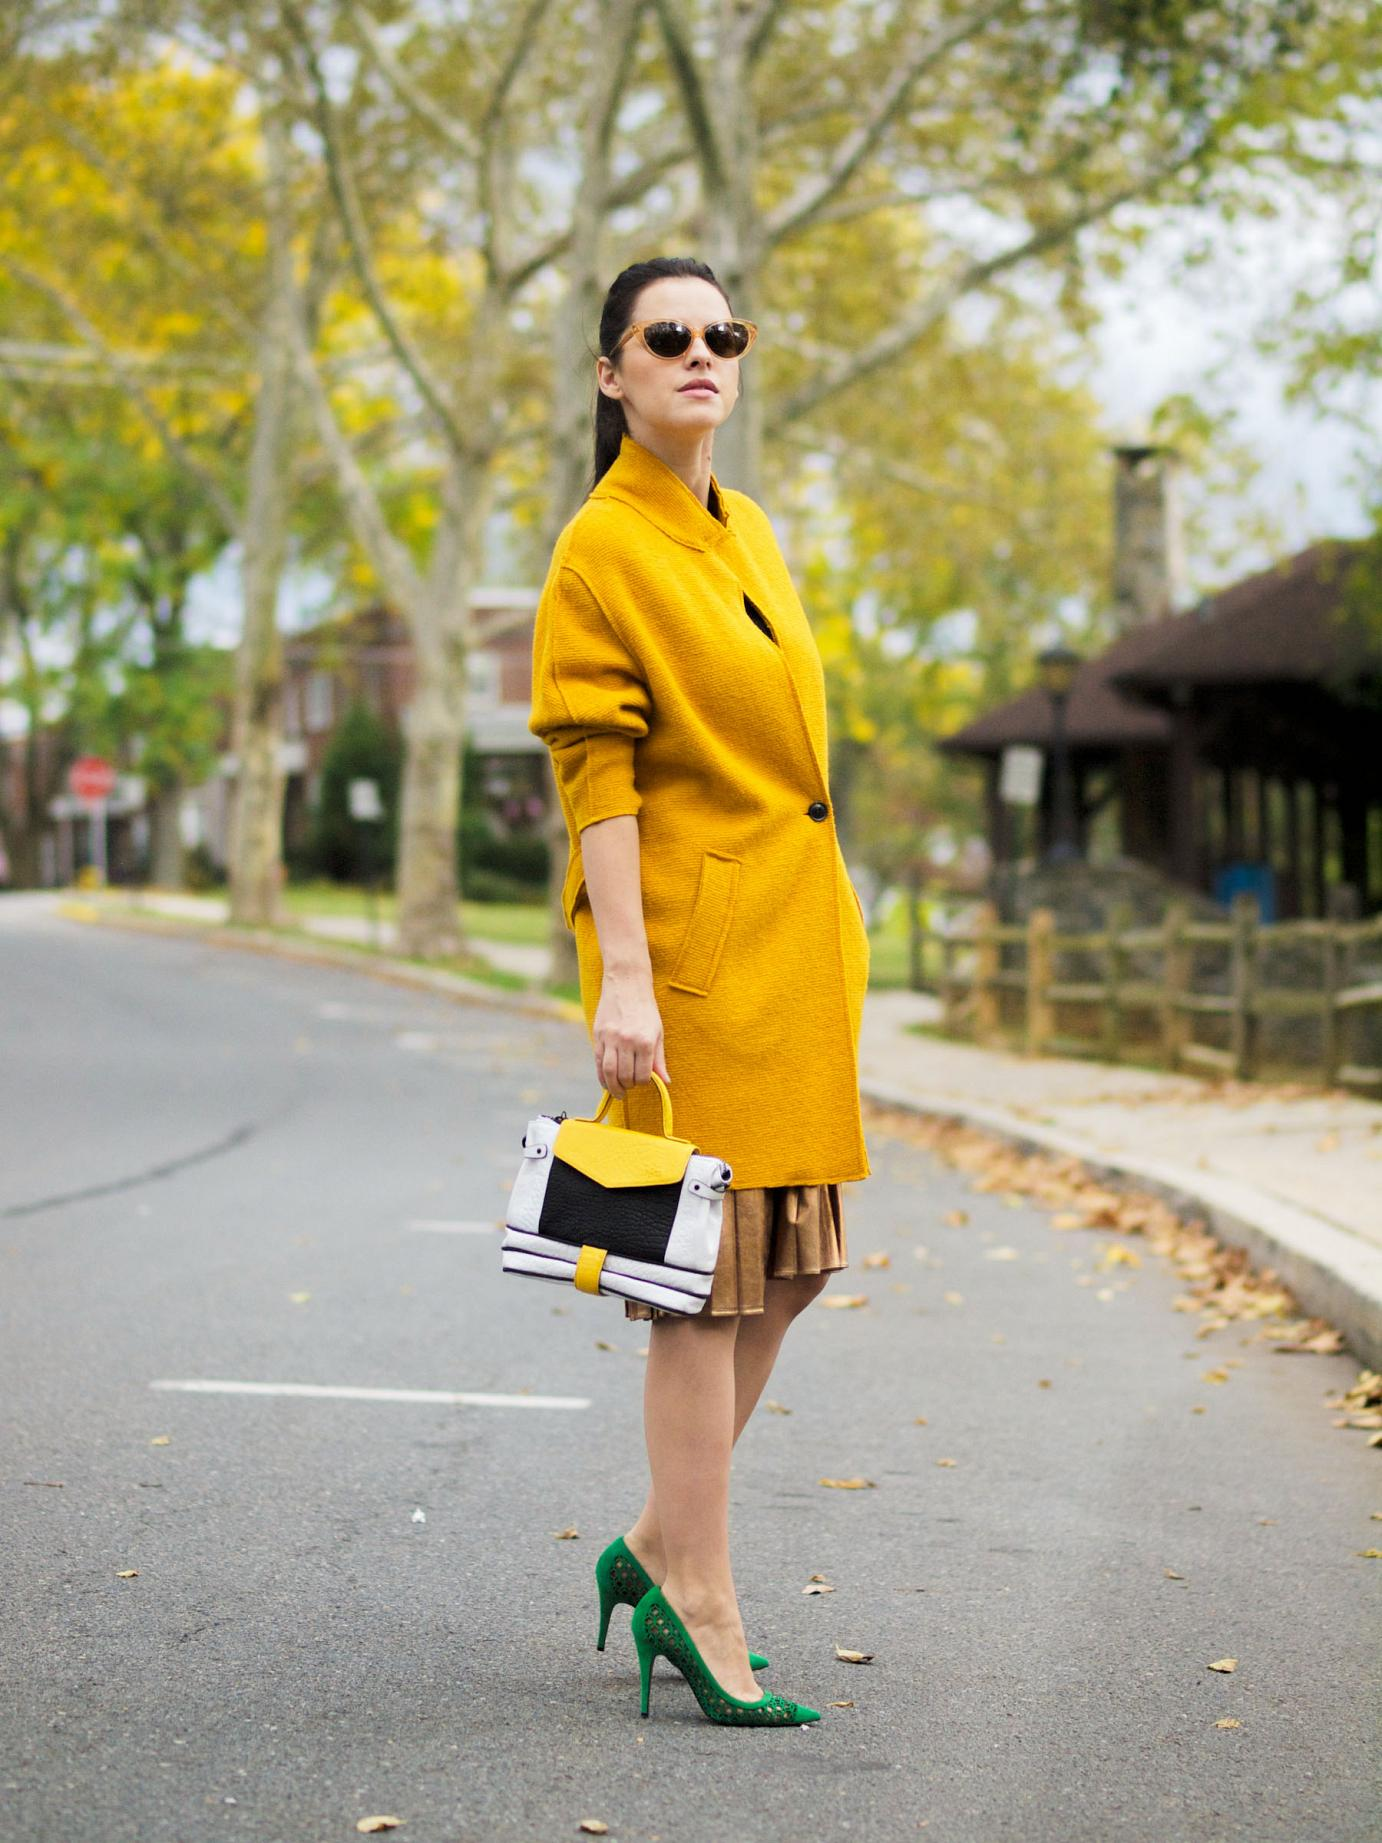 bittersweet colours, fall, fall coats, fall colors, fall trends, yellow coat, facine, pierre hardy shoes, metallic skirt, pleated skirt, metallic trends, eye cat sunglasses, maternity style, 18 weeks, street style,